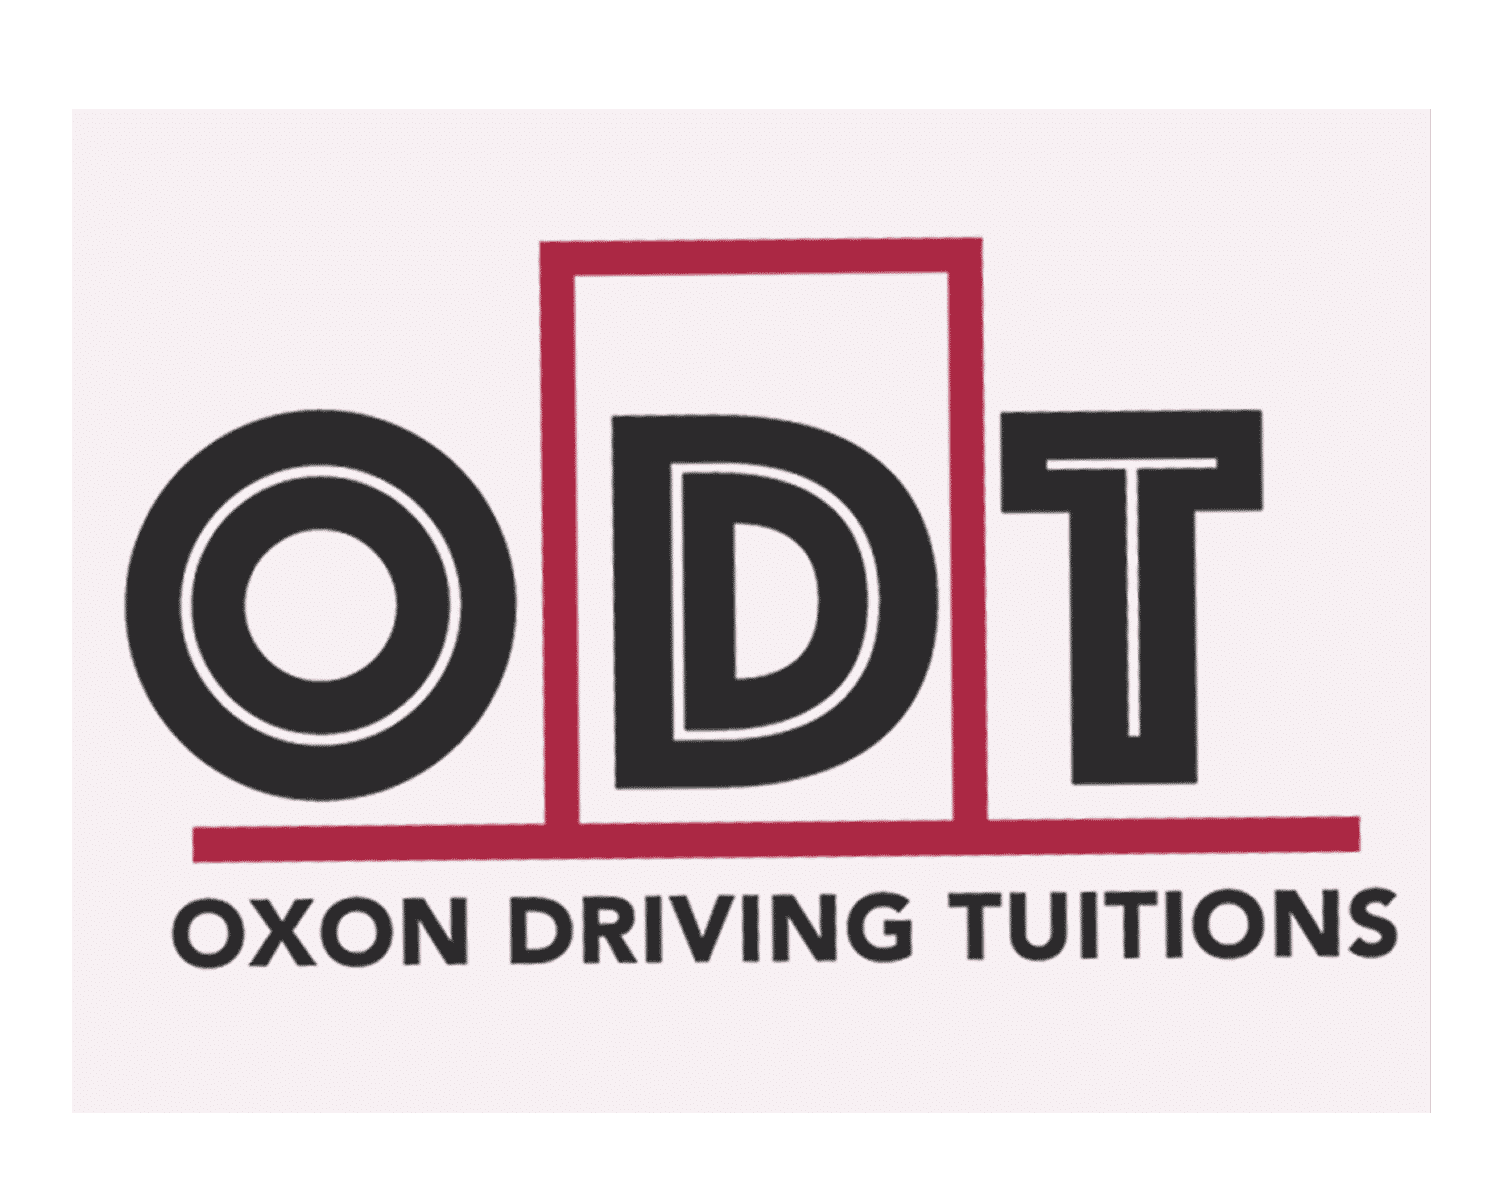 Oxon Driving Tuitions